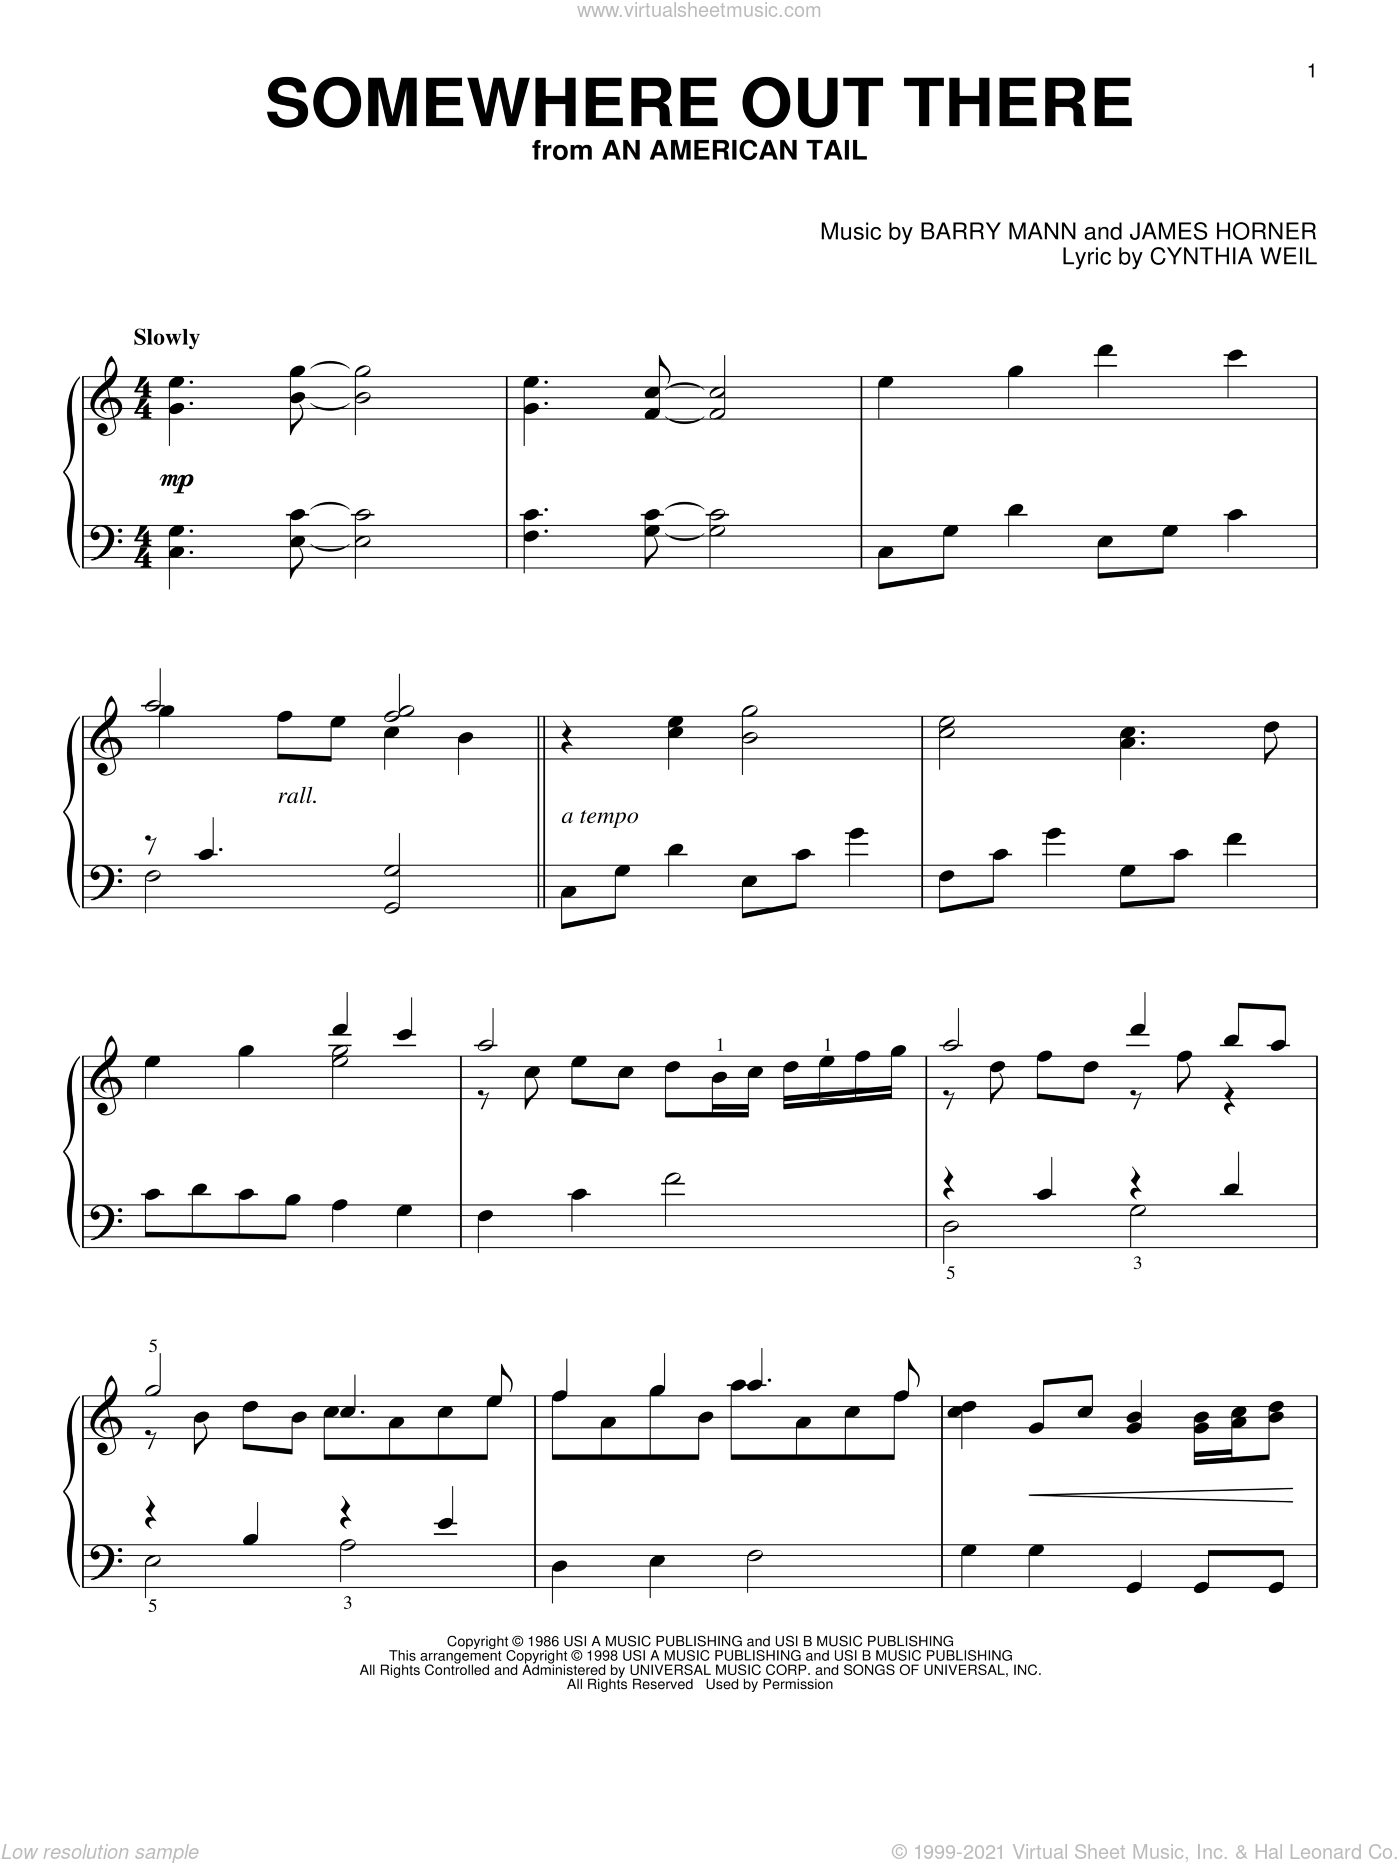 Somewhere Out There sheet music for piano solo by James Horner, Linda Ronstadt & James Ingram, Barry Mann and Cynthia Weil, intermediate skill level